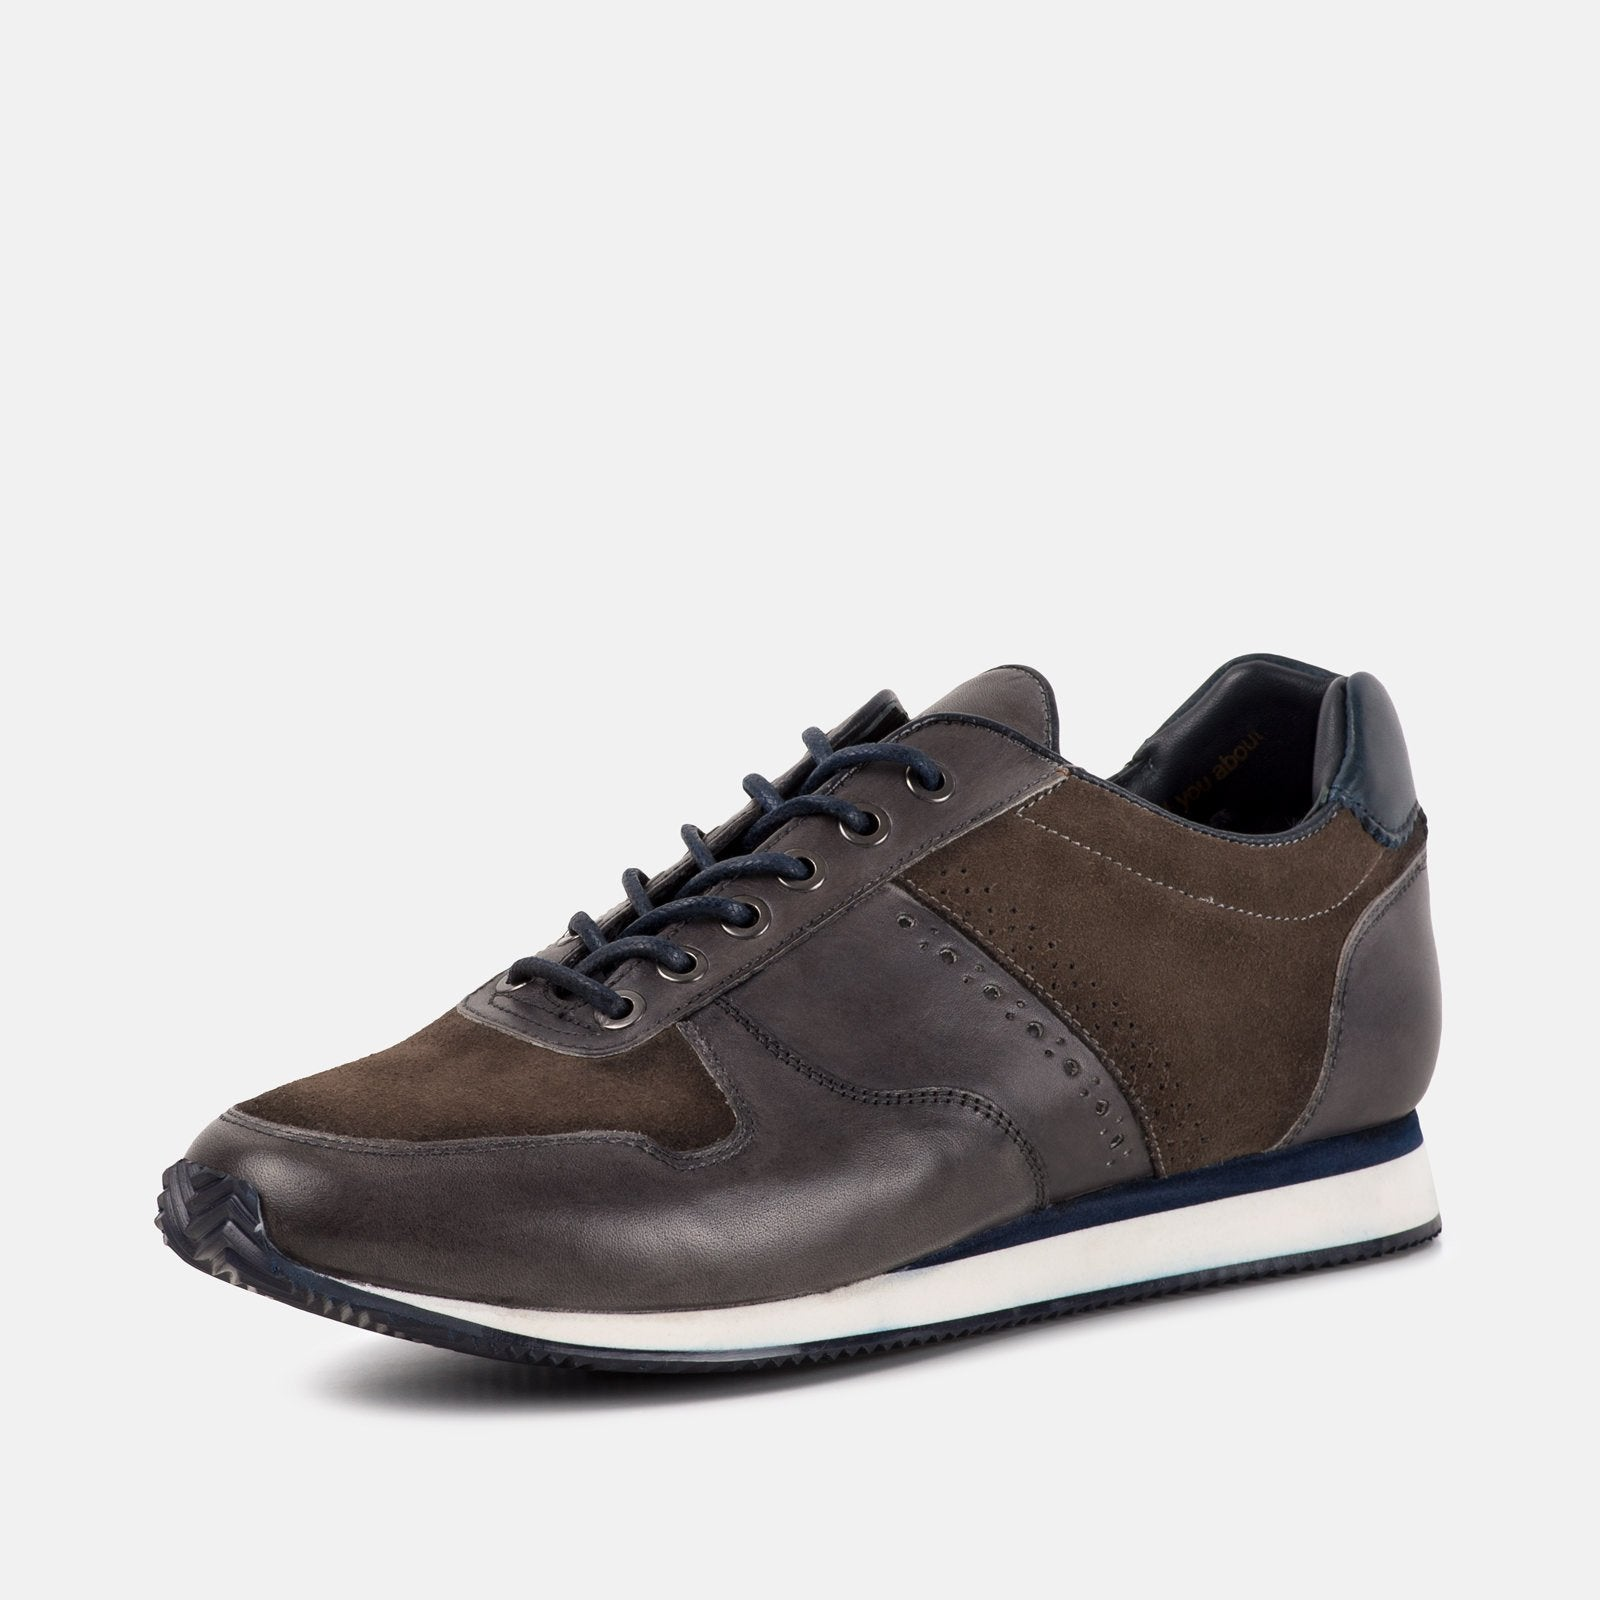 Goodwin Smith Footwear UK 6 / EURO 39 / US 7 / Grey / Leather BRONX GREY